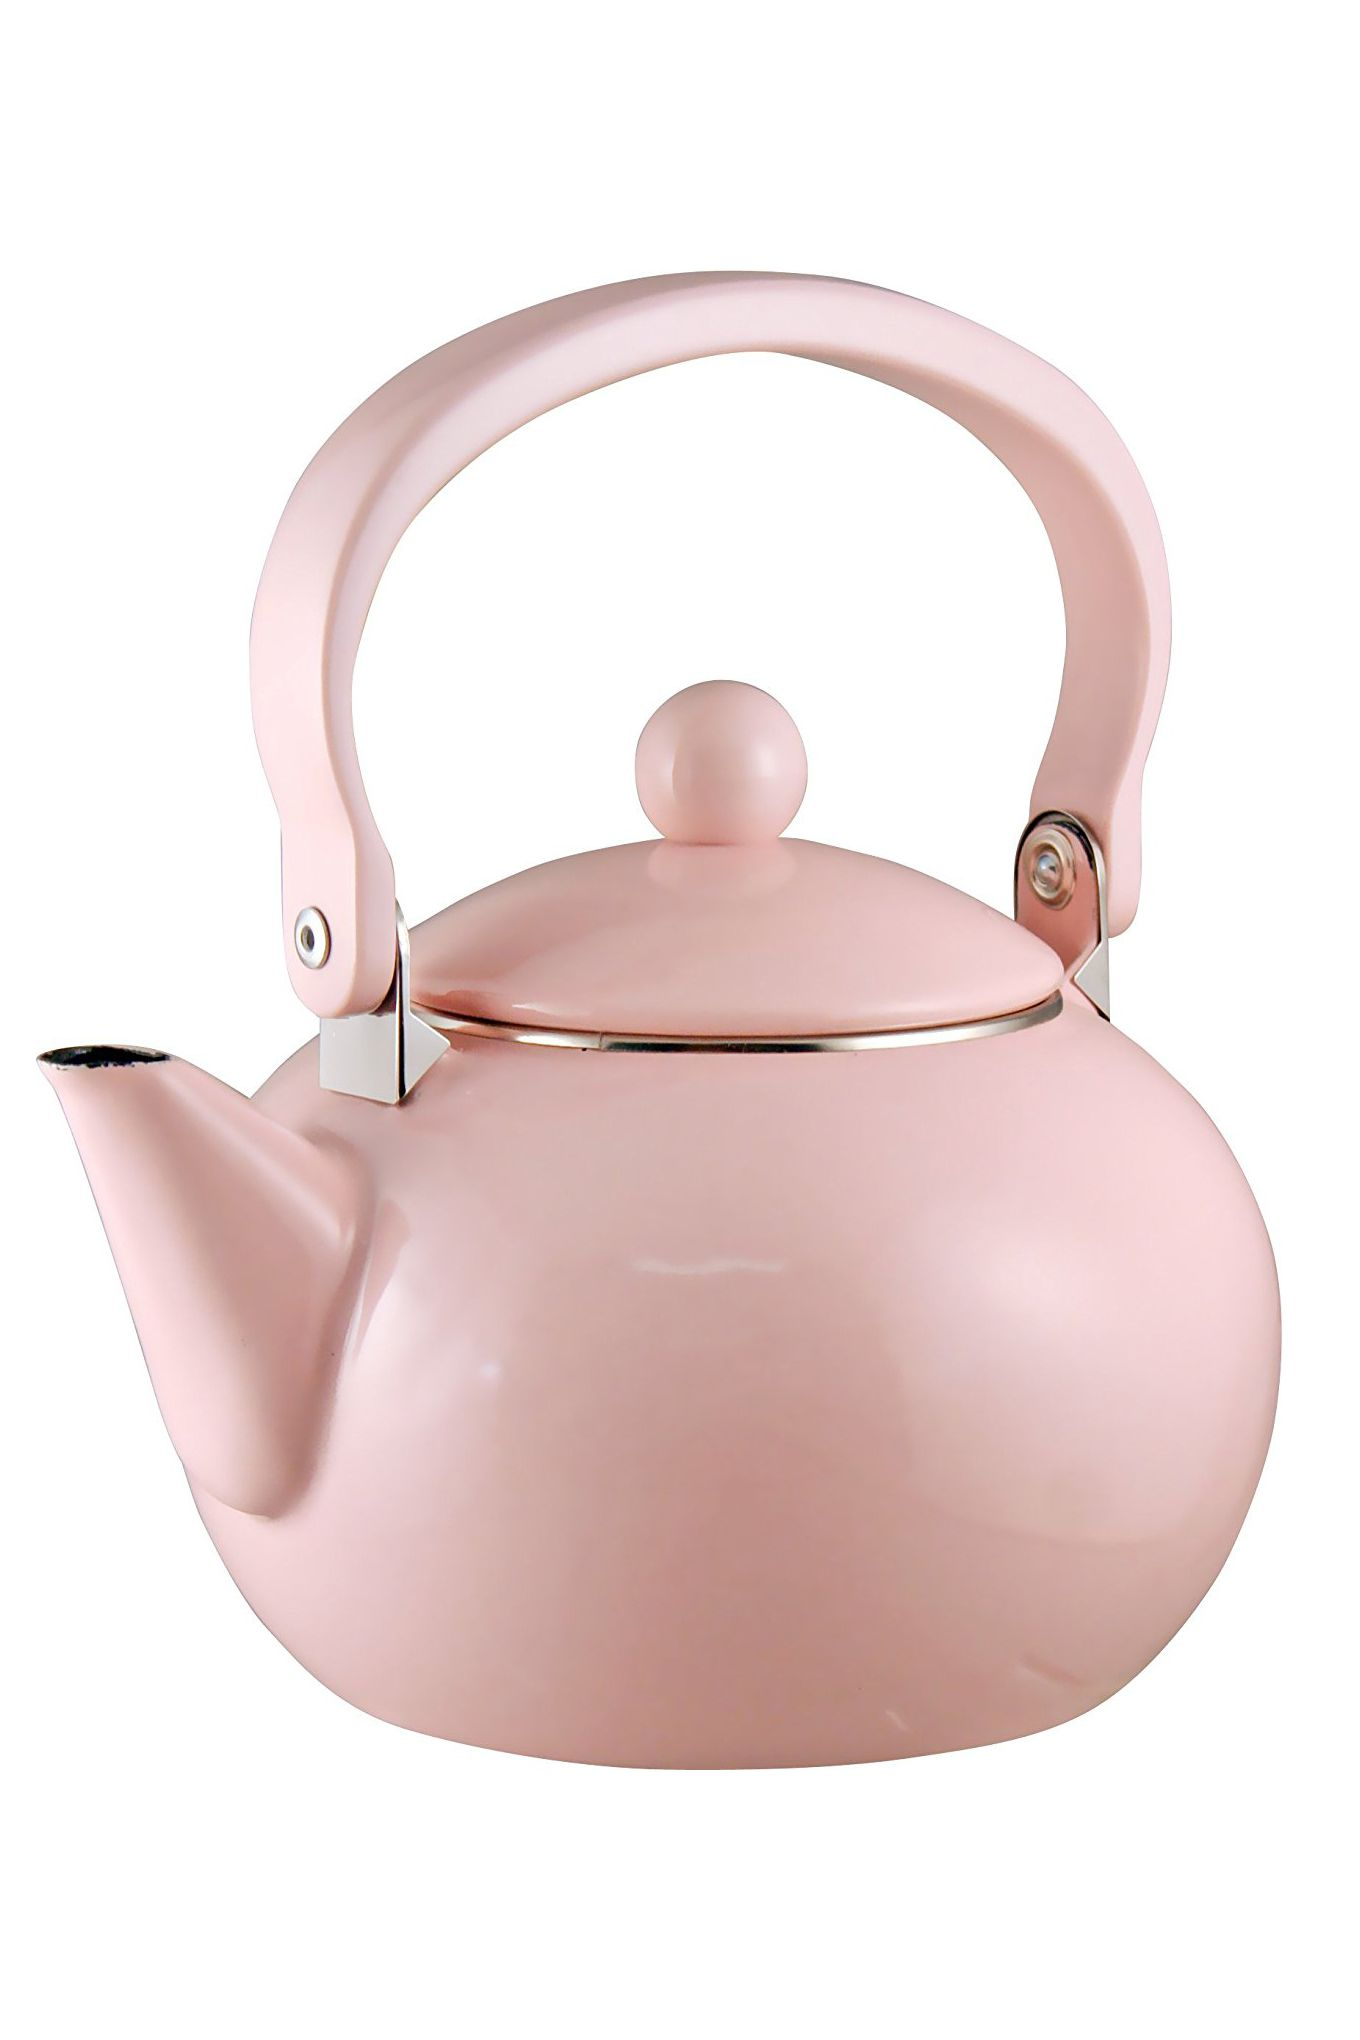 calypso basics by reston lloyd enamel-on-steel tea kettle